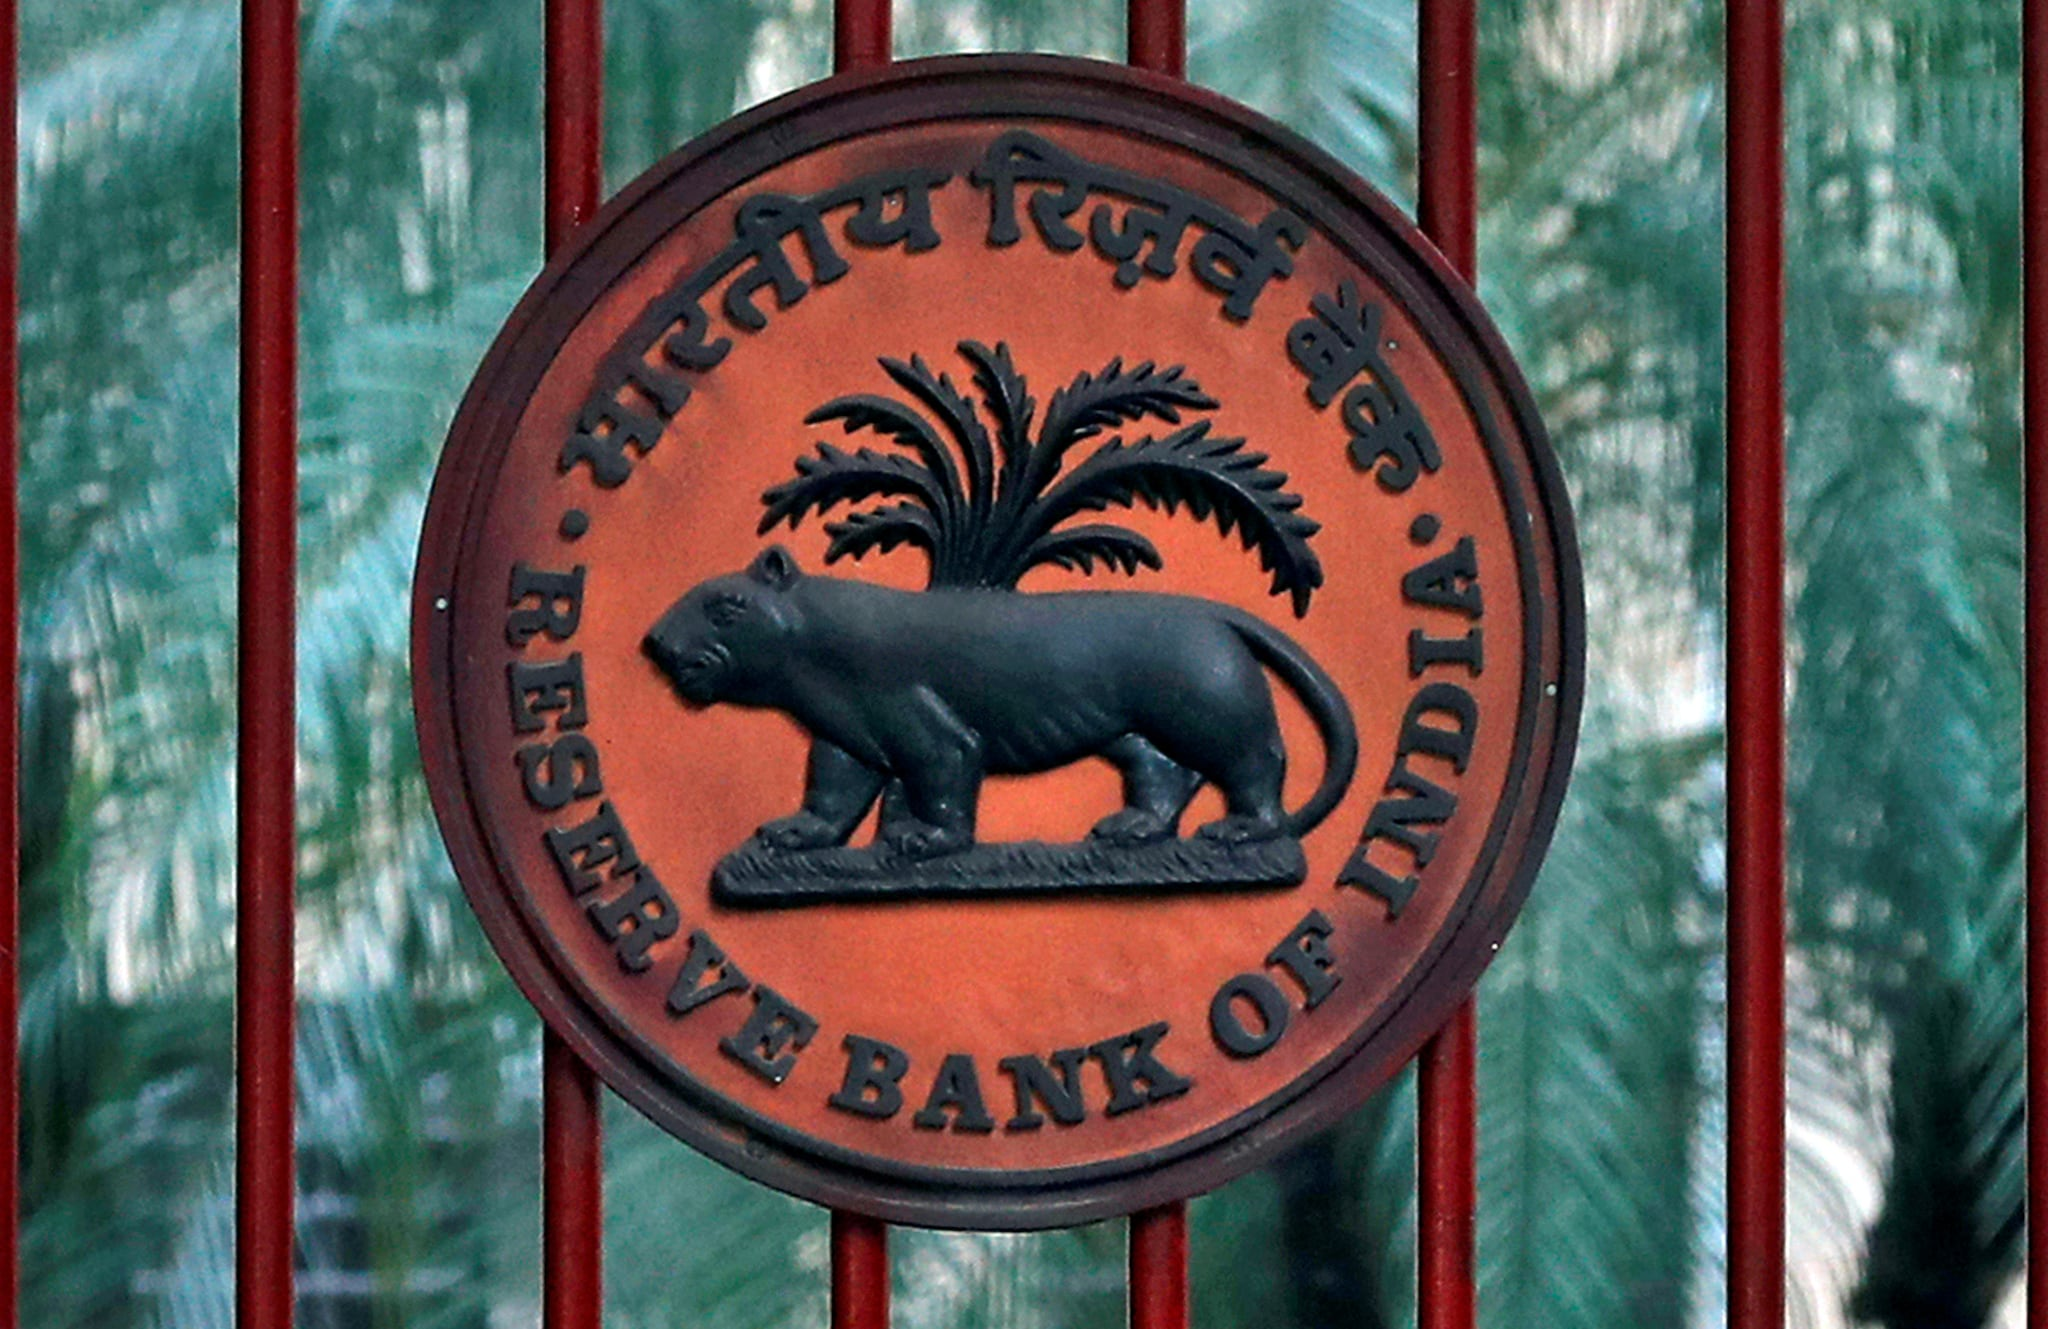 8. RBI Tweaks Norms On VRR Investment By FPIs: The Reserve Bank of India on Friday fixed the investment limit at Rs 54,606.55 crore for foreign portfolio investors (FPIs) under the voluntary retention route (VRR), which allows to park funds in both government securities as well as corporate debt. The revised VRR scheme will open for allotment from May 27. The minimum retention period would be three years. During this period, FPIs shall maintain a minimum of 75 percent of the allocated amount in India. (Image: Reuters)